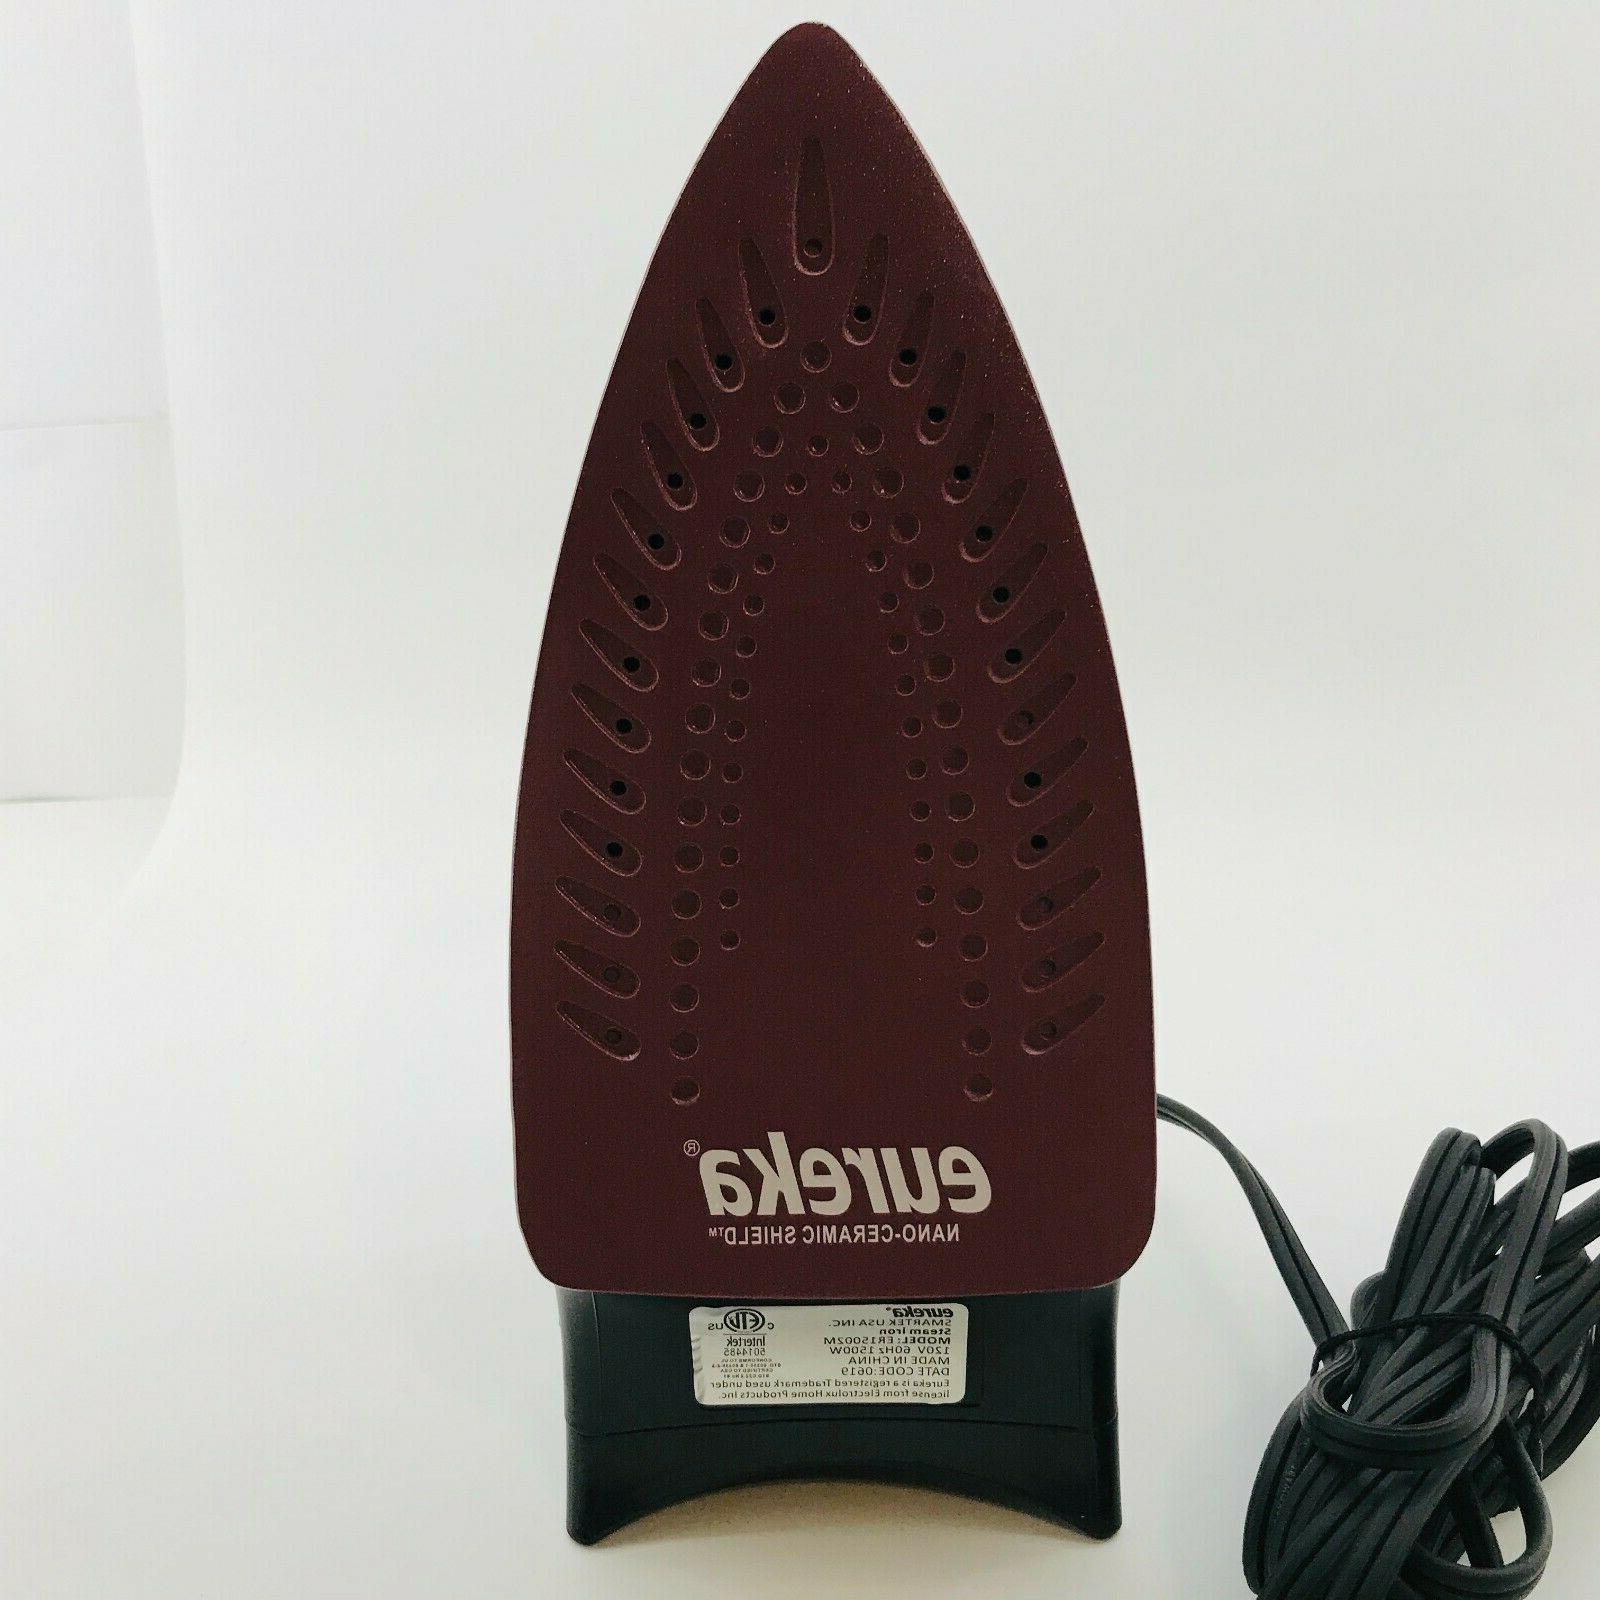 Eureka 1500 Watt Iron New | Tested